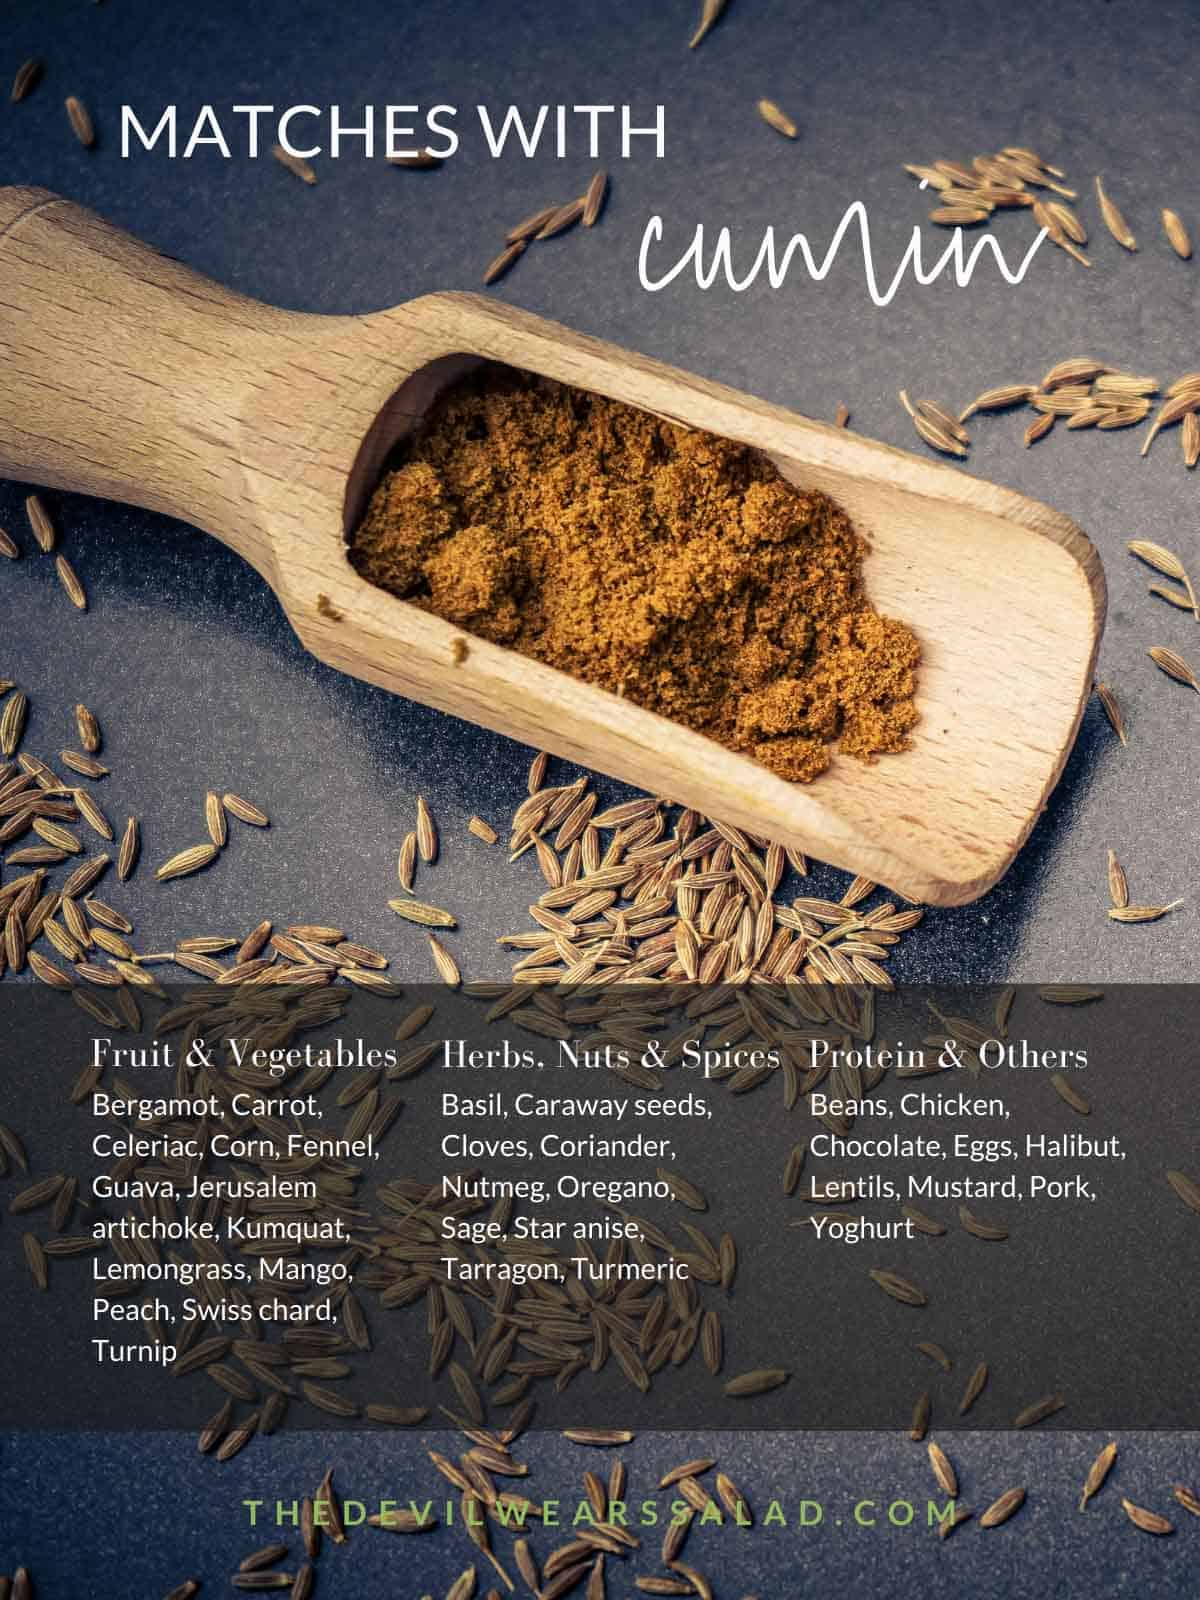 What Goes with Cumin